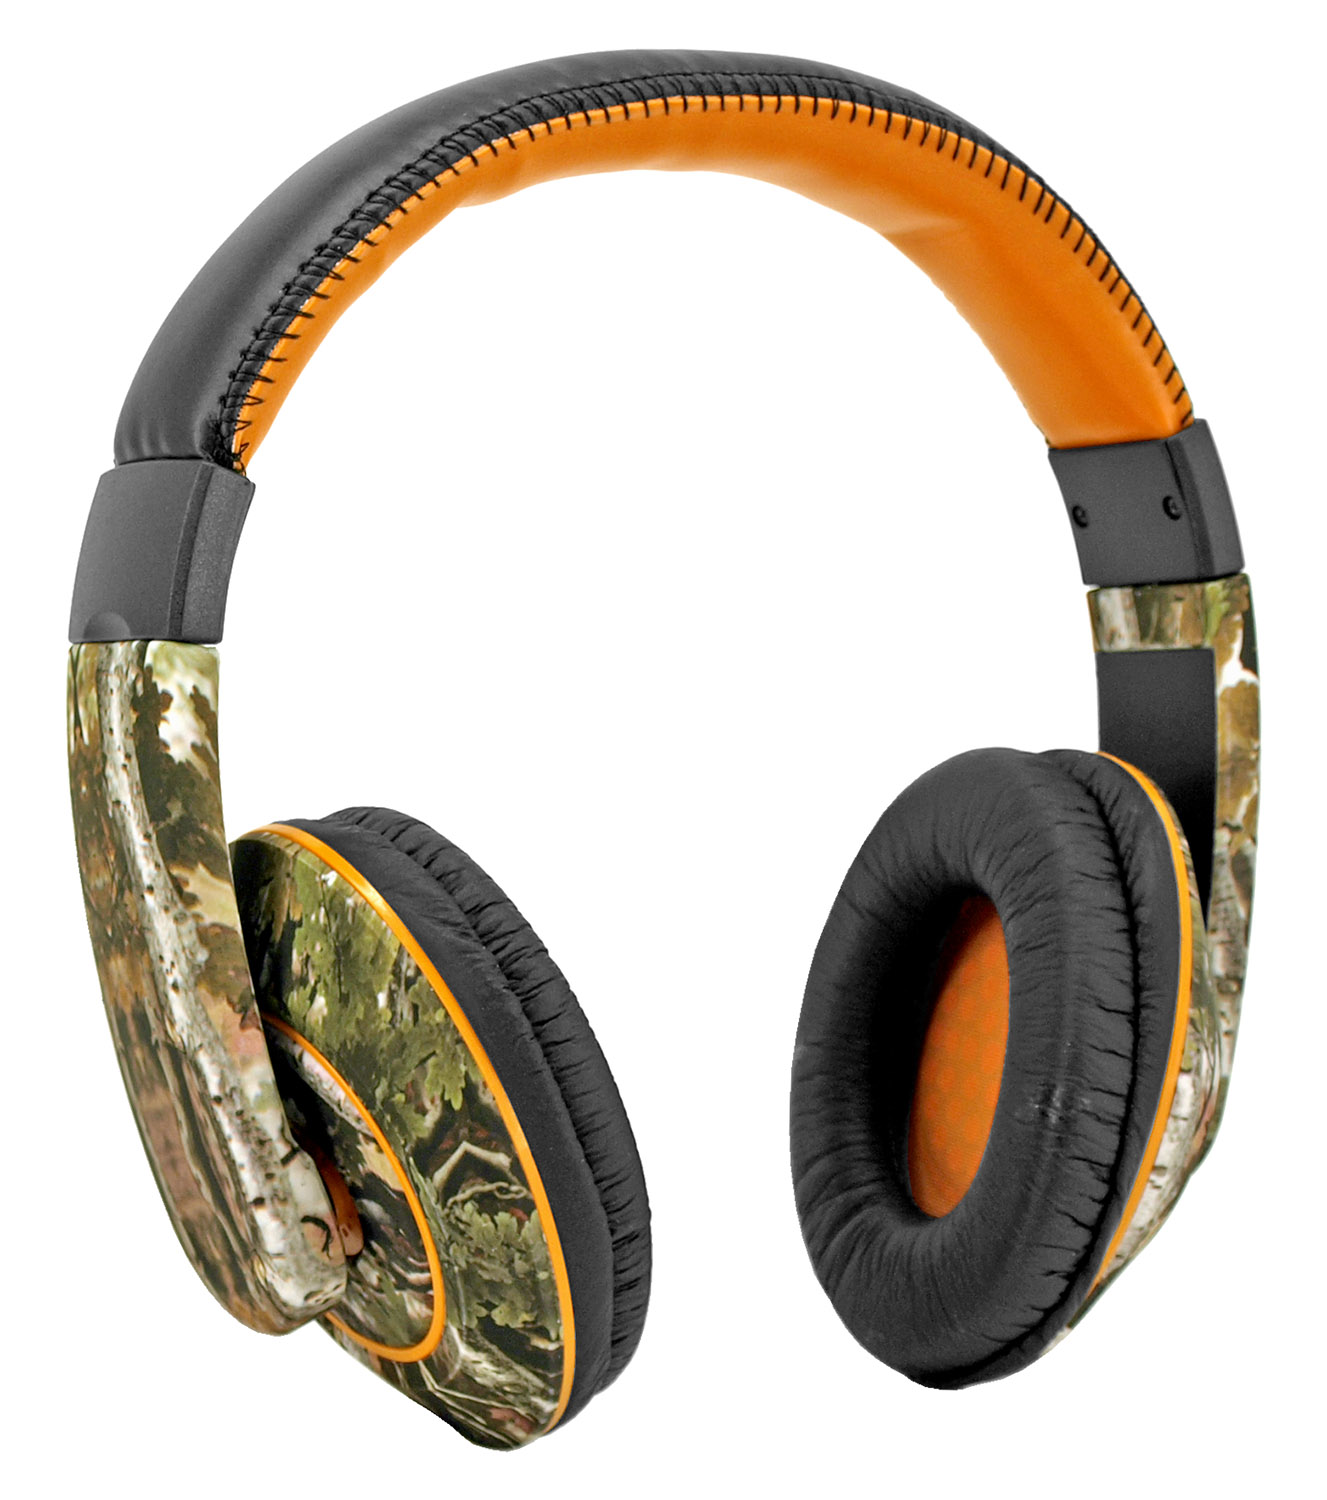 Stealth Pro Noise Cancelling Headphones - Outdoor Camo